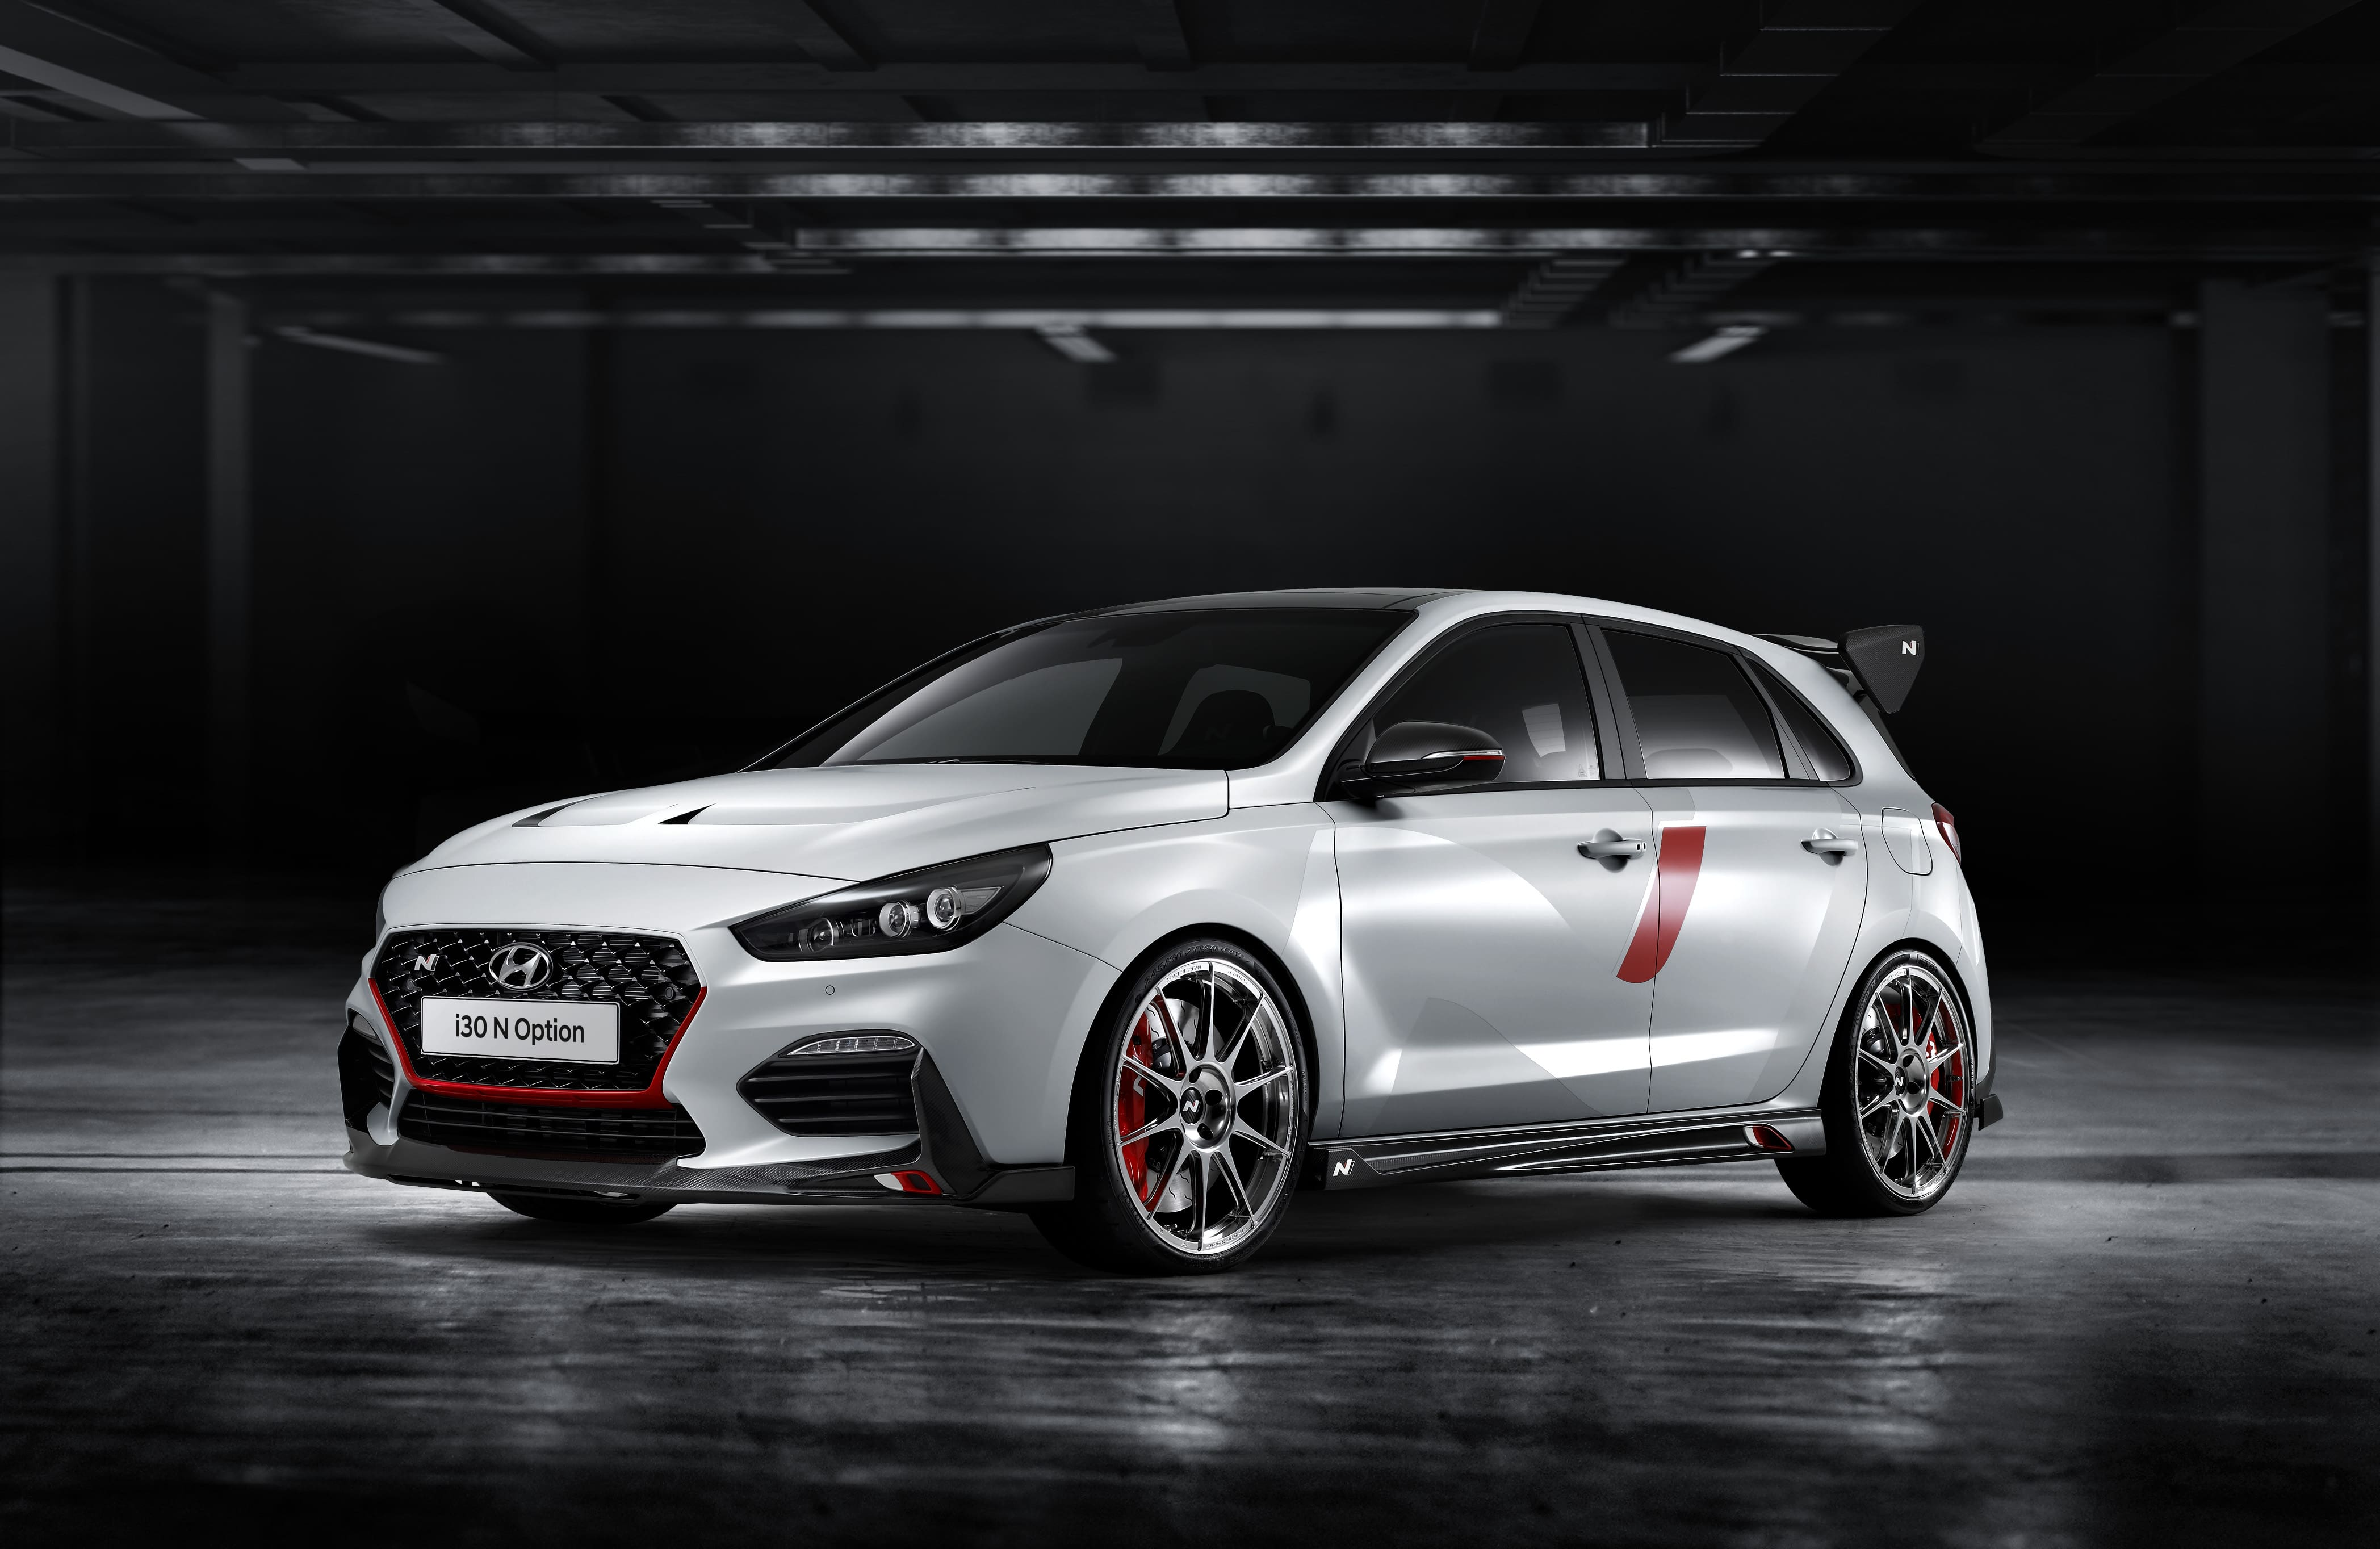 Ultimate performance: Hyundai 'N Option' premieres at Paris Motor Show